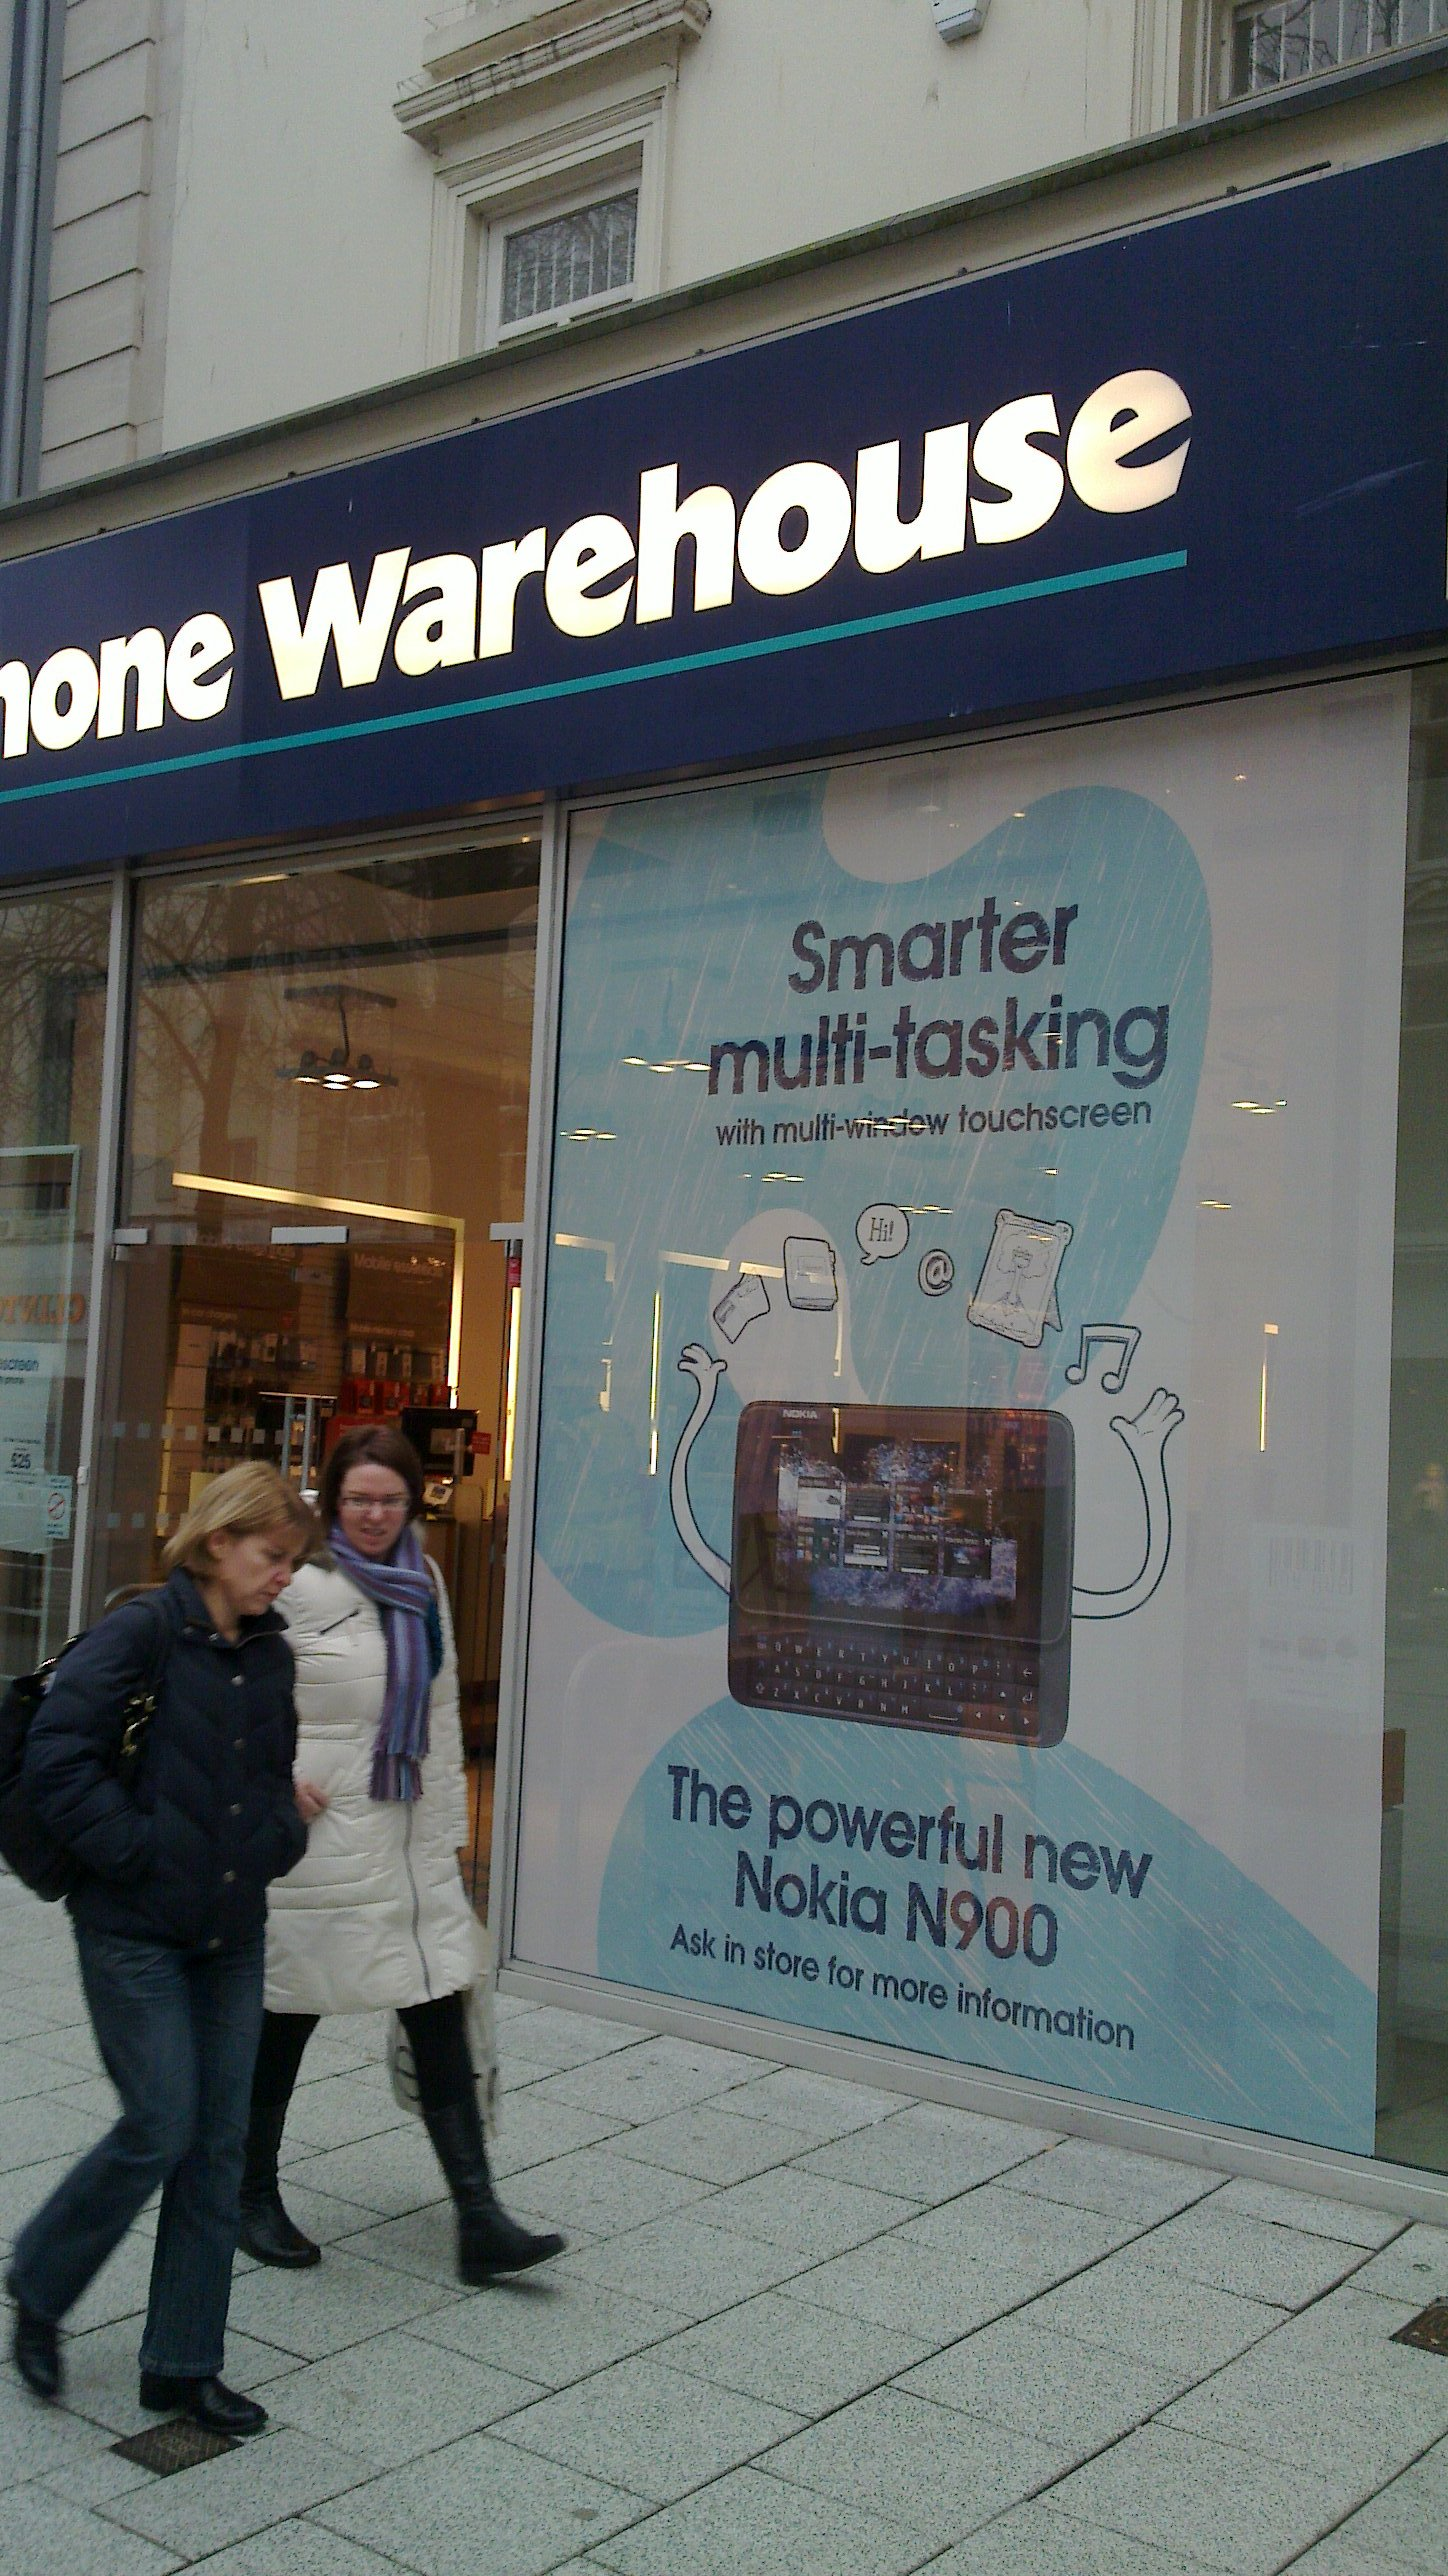 MyNokiaBlog Weekly Post Roundup (Ep 5) :#Symbiangives, Symbian^4 screenshots, and N900 love from Carphone Warehouse.